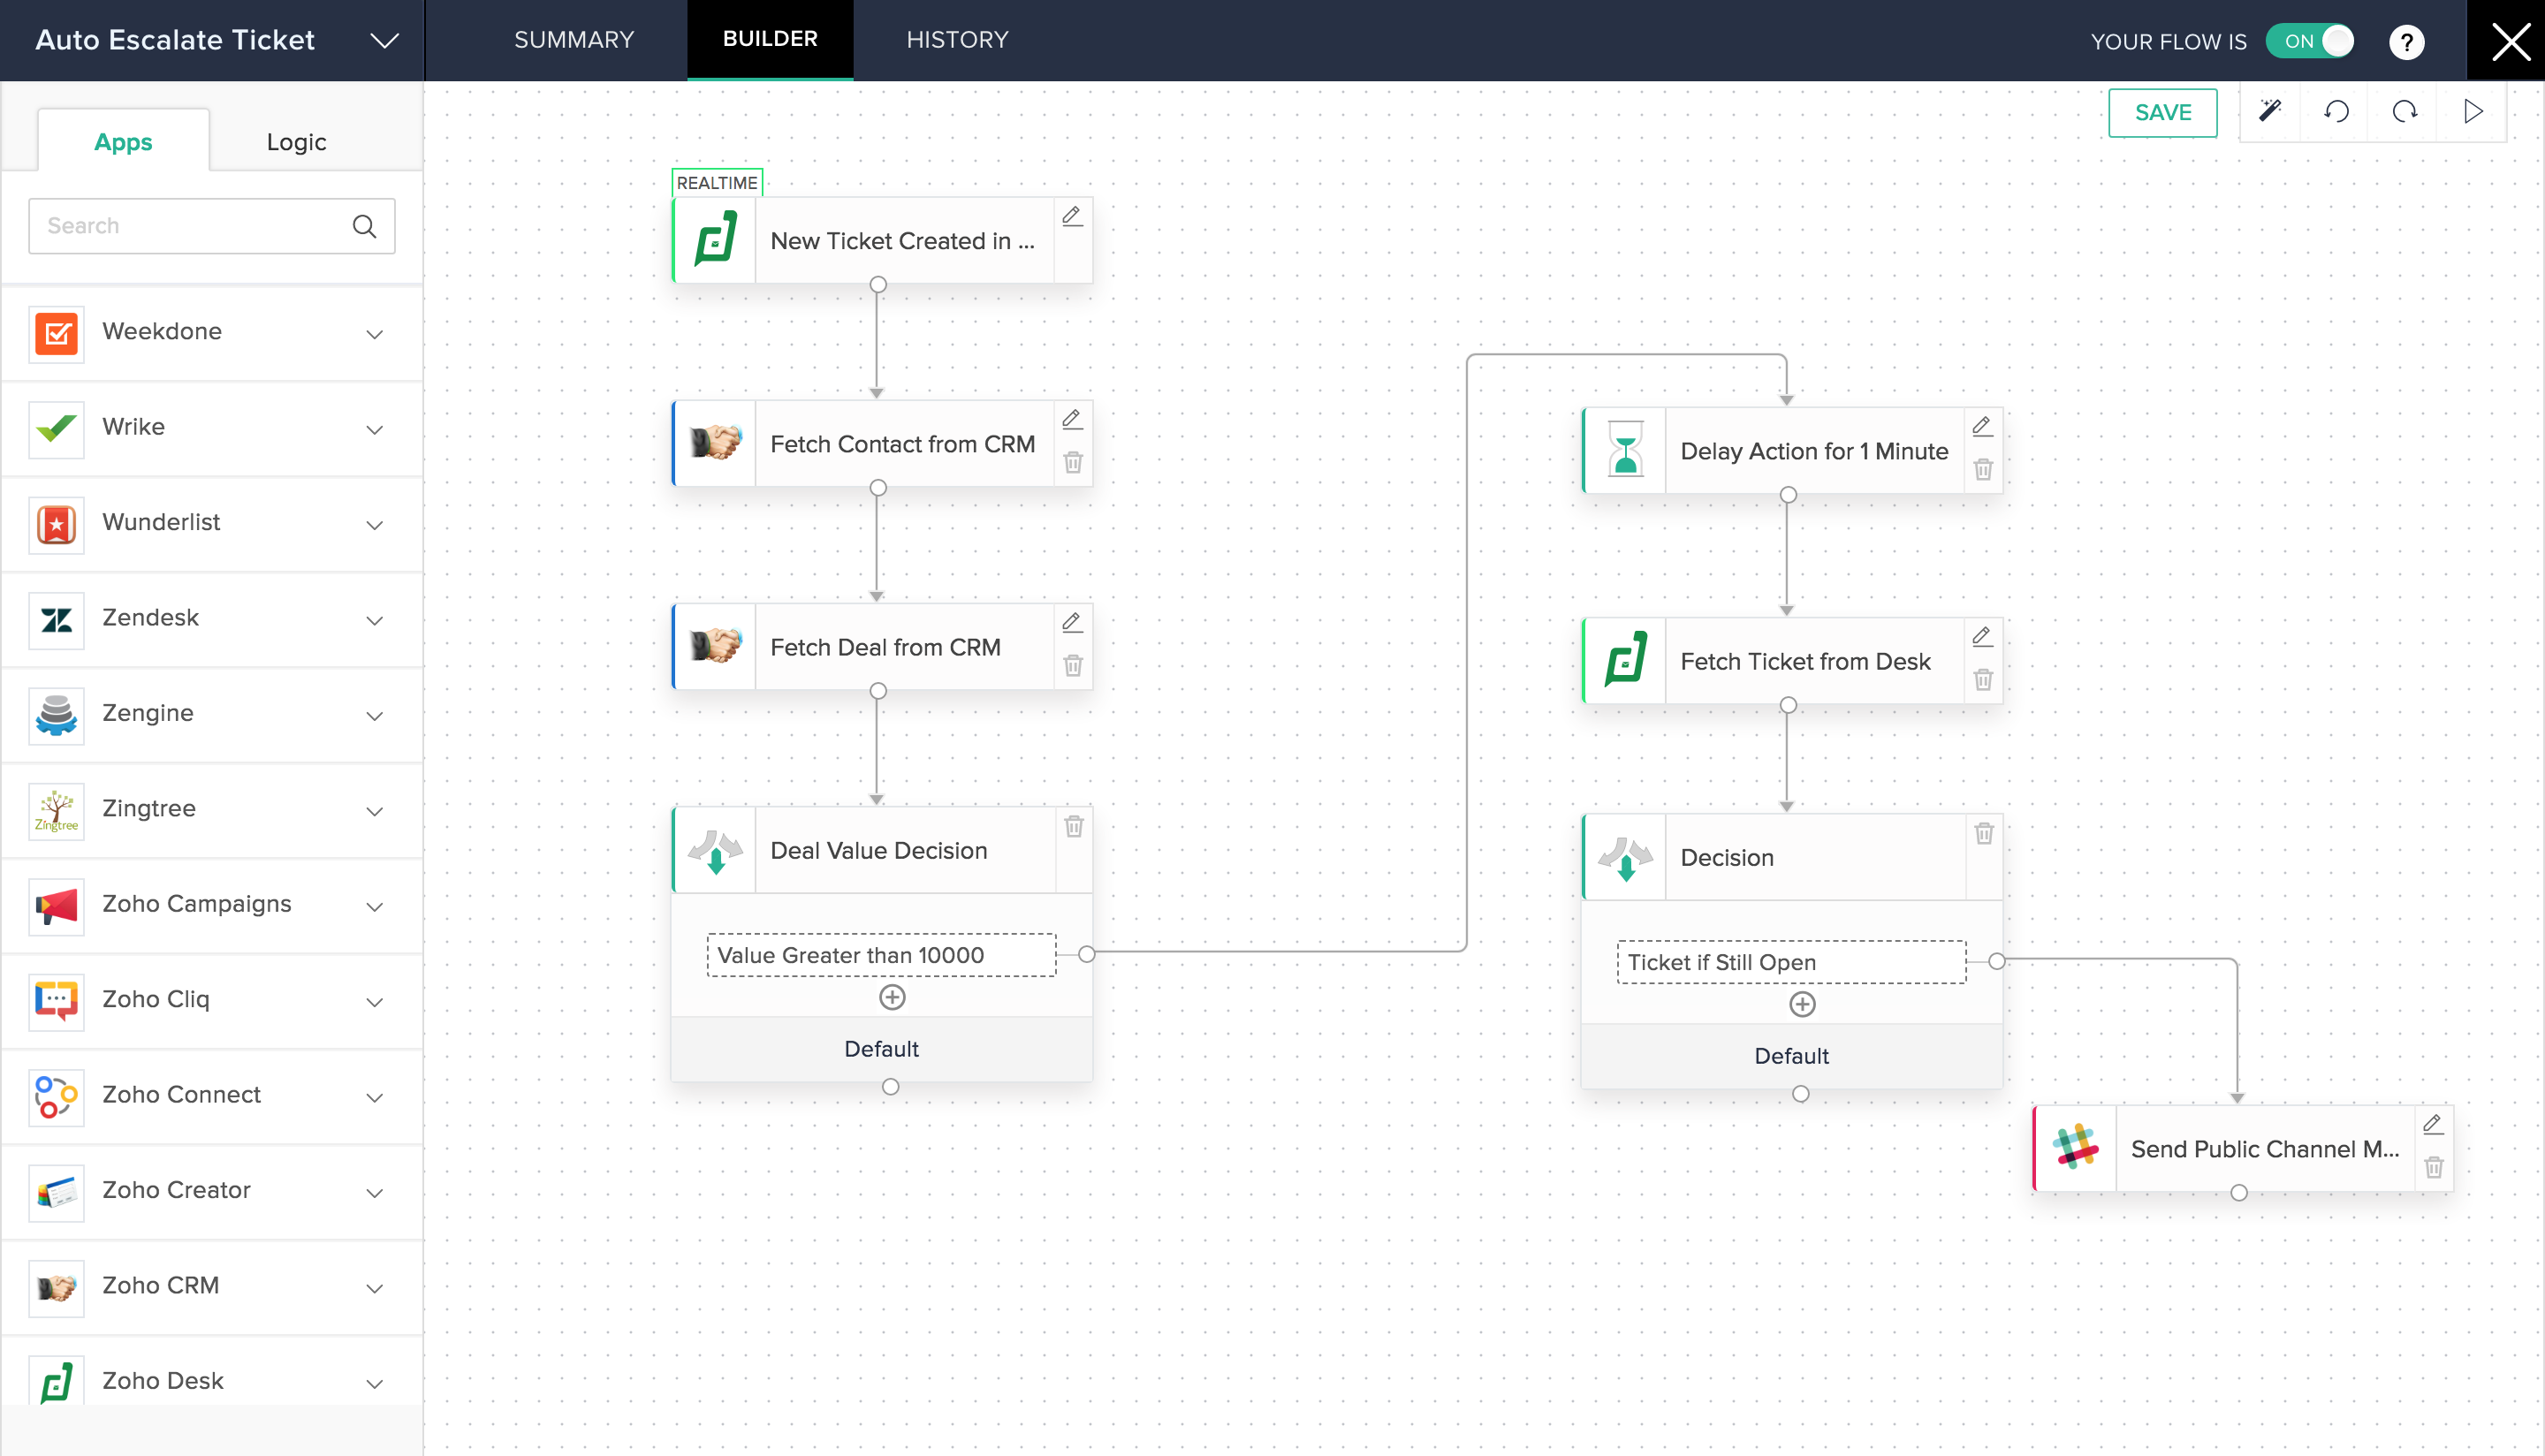 Introducing Zoho Flow: An App Integration Platform Designed to